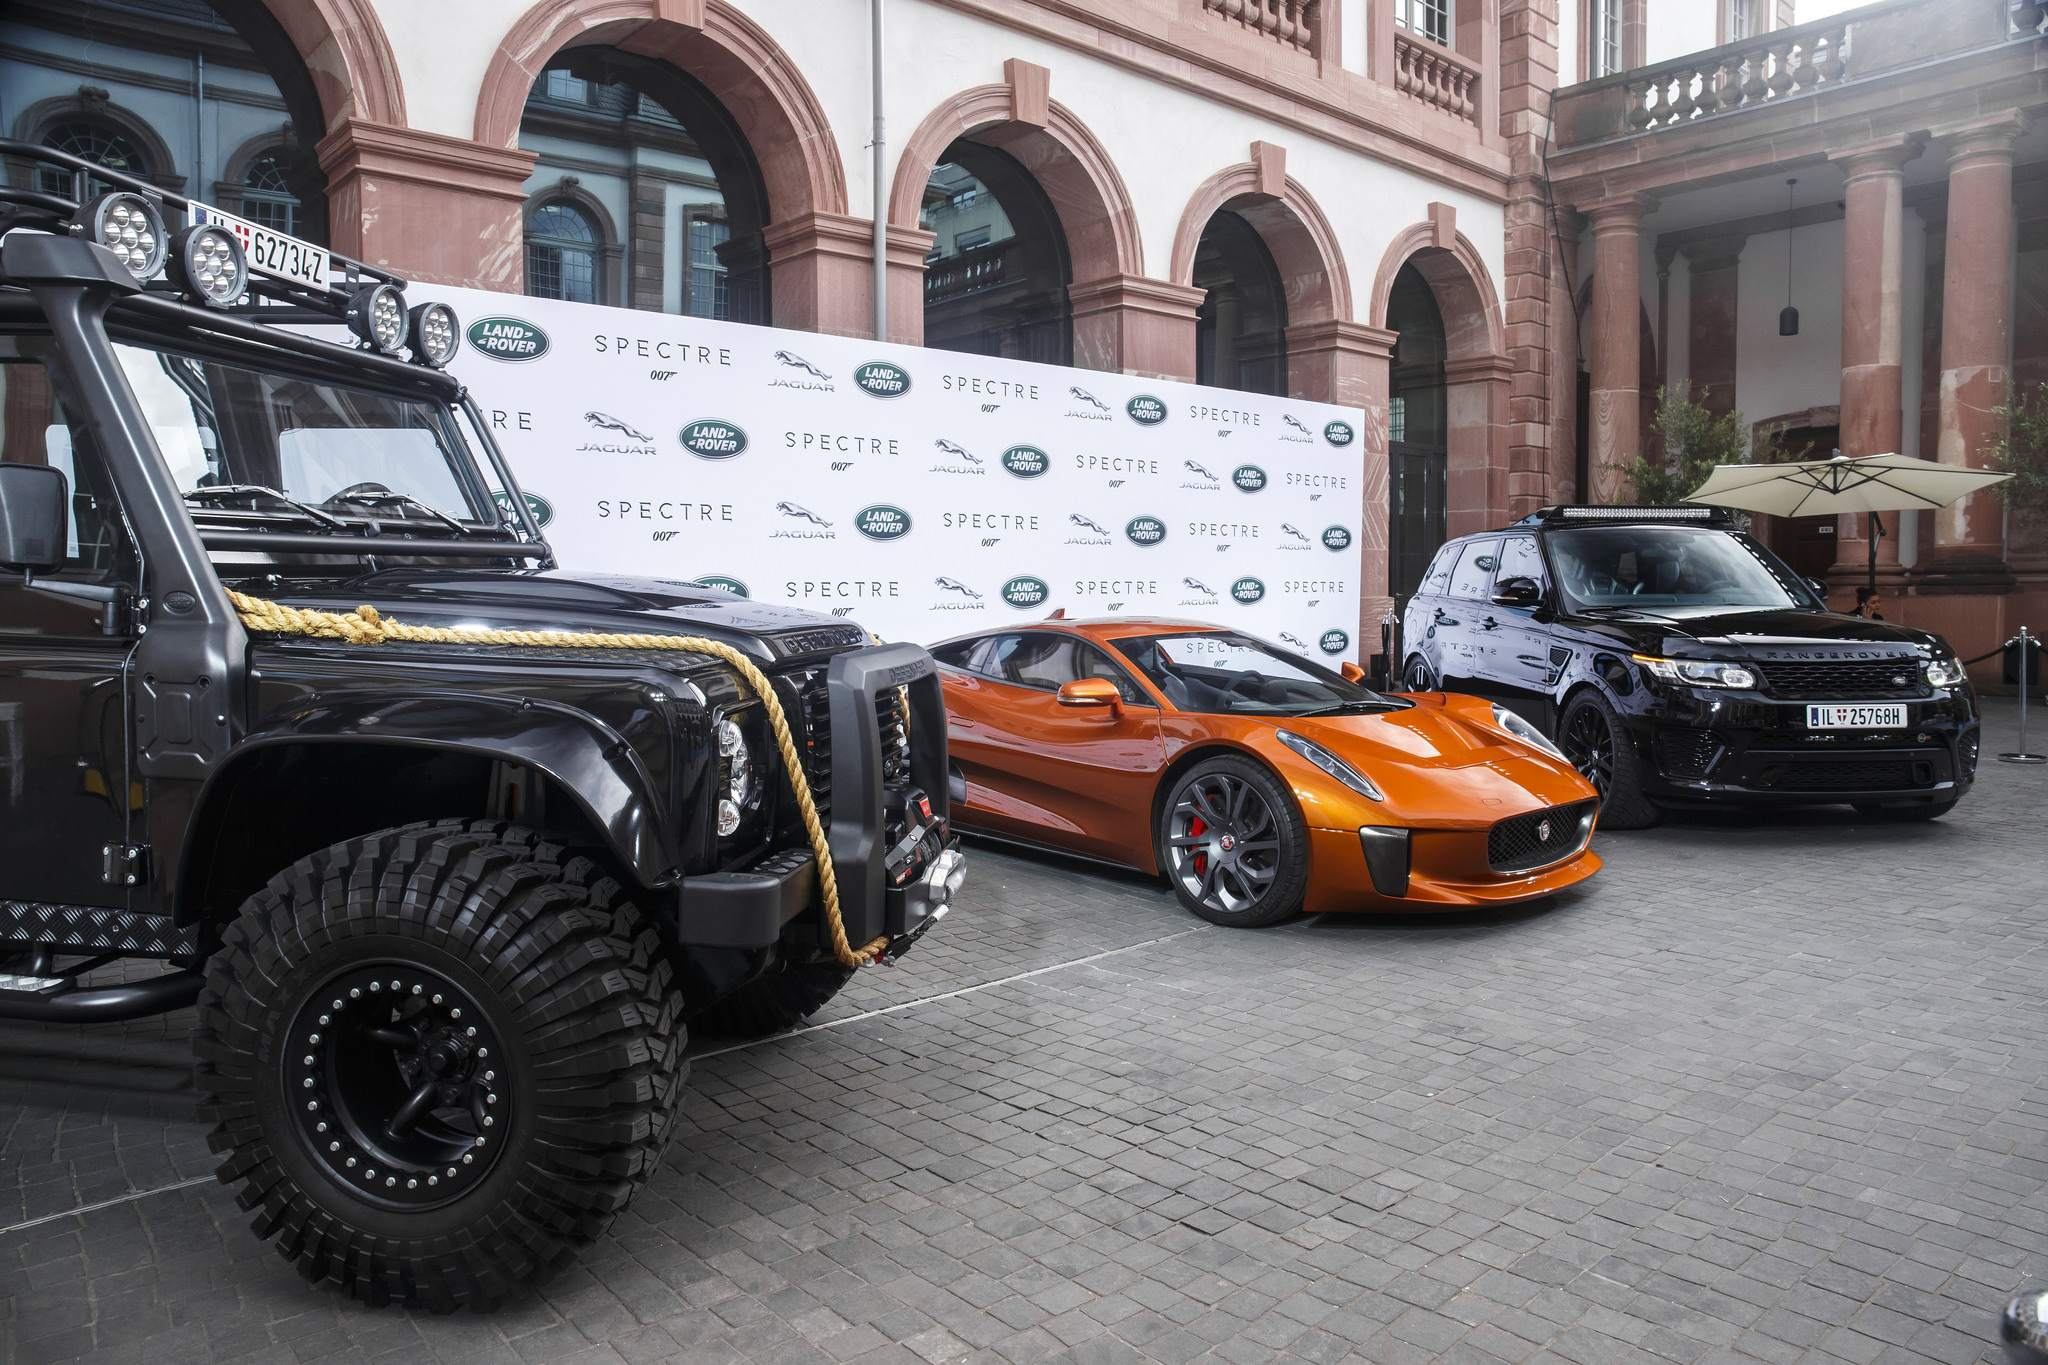 spectre car8 Jaguar Land Rover Latest Bond Cars